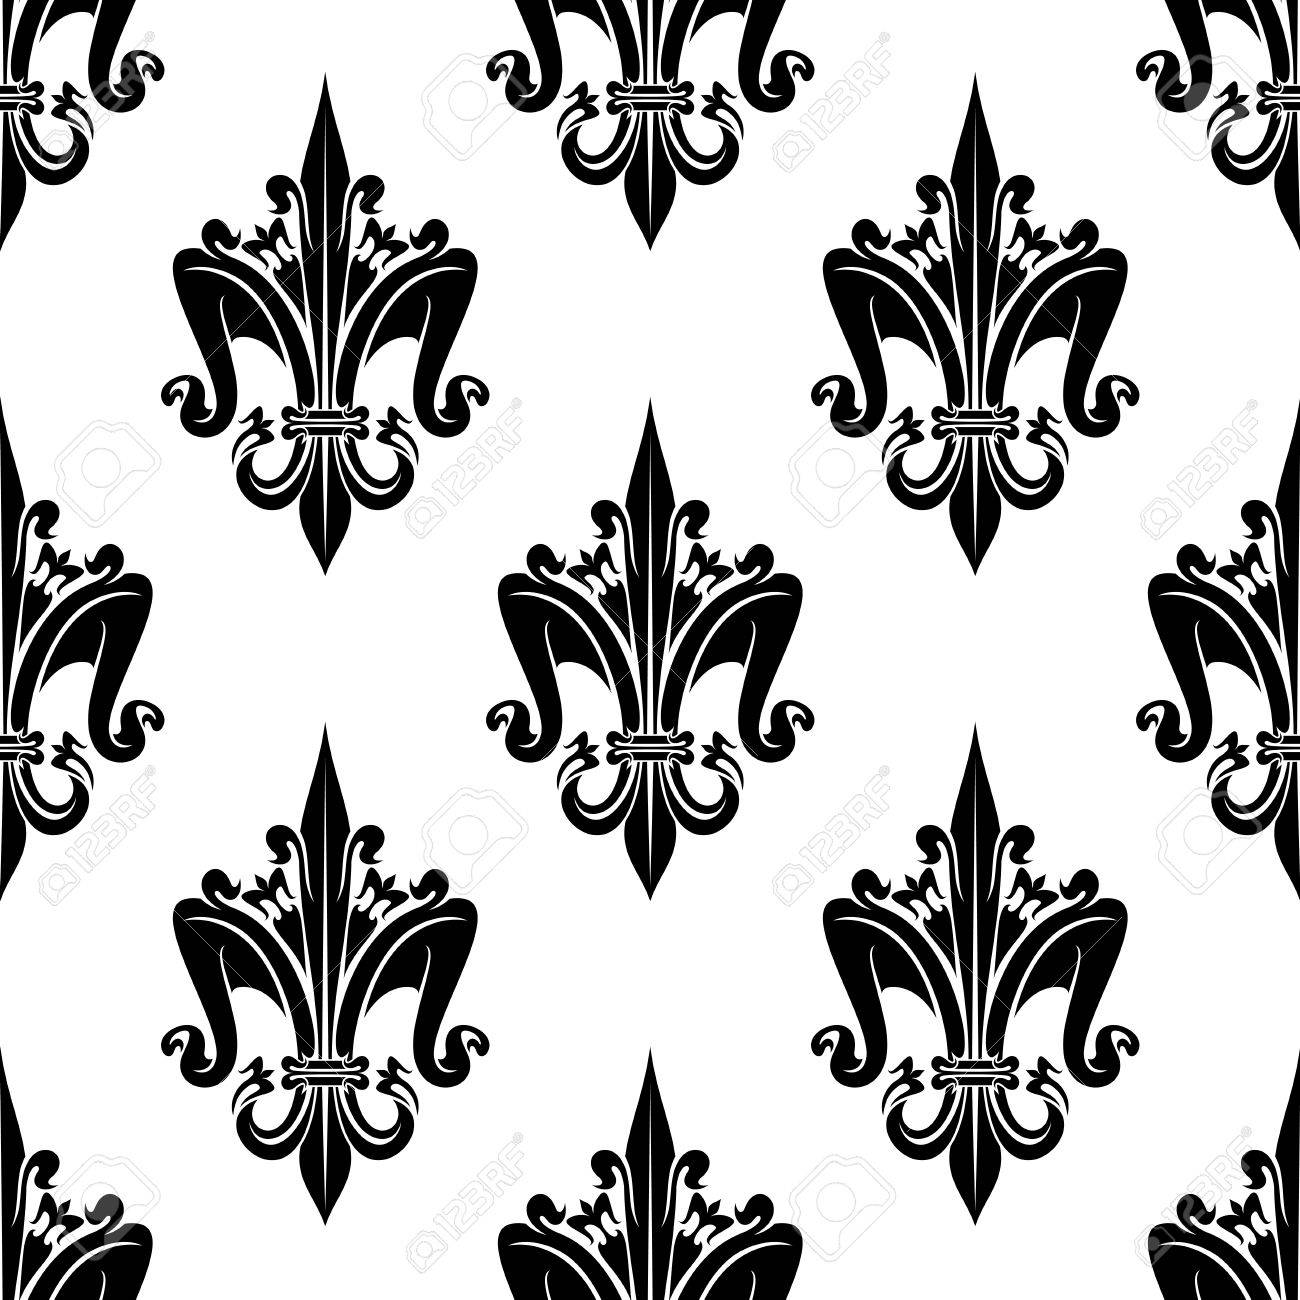 Black And White Seamless French Heraldic Decorative Floral Pattern